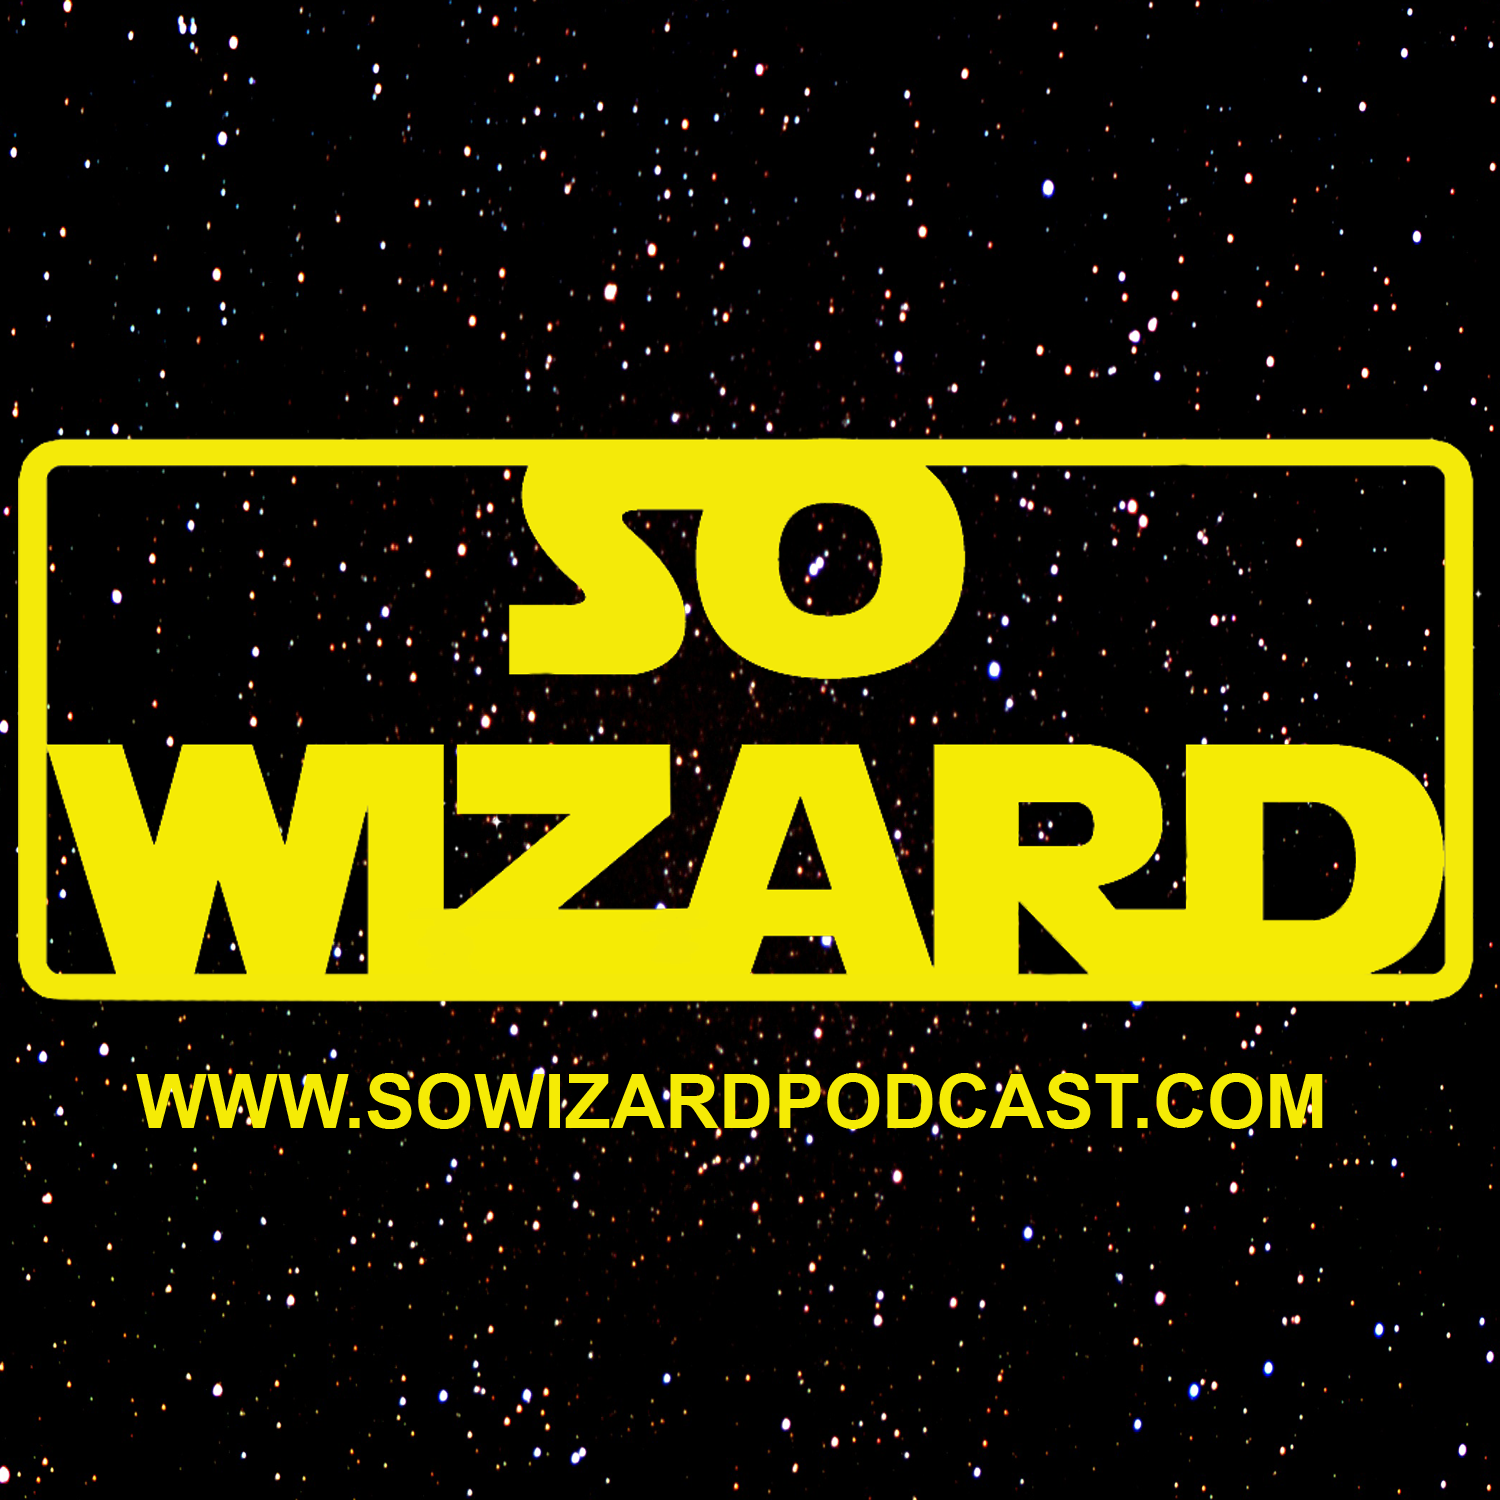 EPISODE 199: SOLO: A STAR WARS STORY